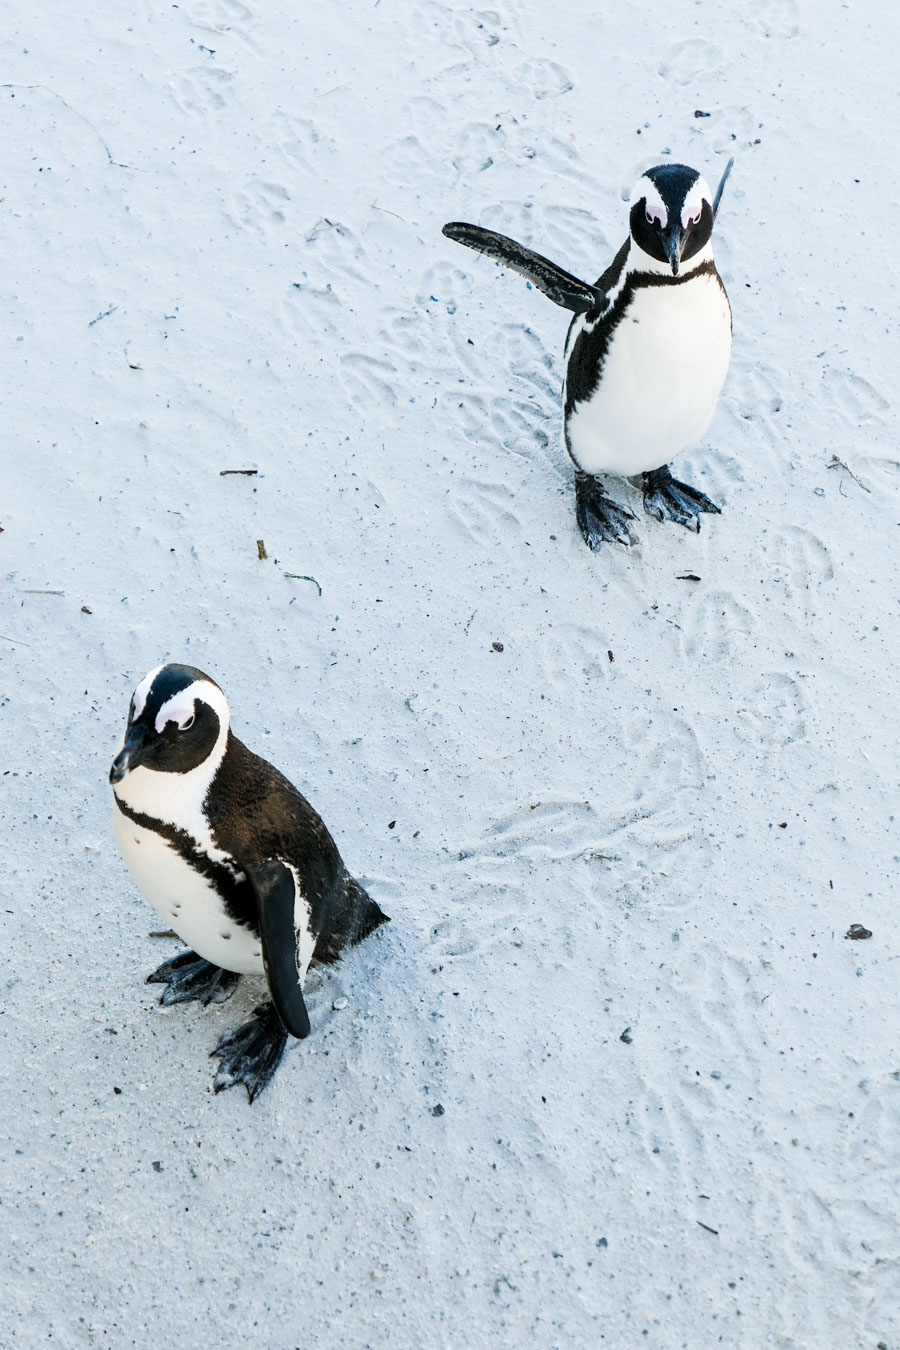 Activities in Cape Town Travel Blog - Day Trip to Cape of Good Hope - Cape Point Lighthouse - Boulder Beach Penguins